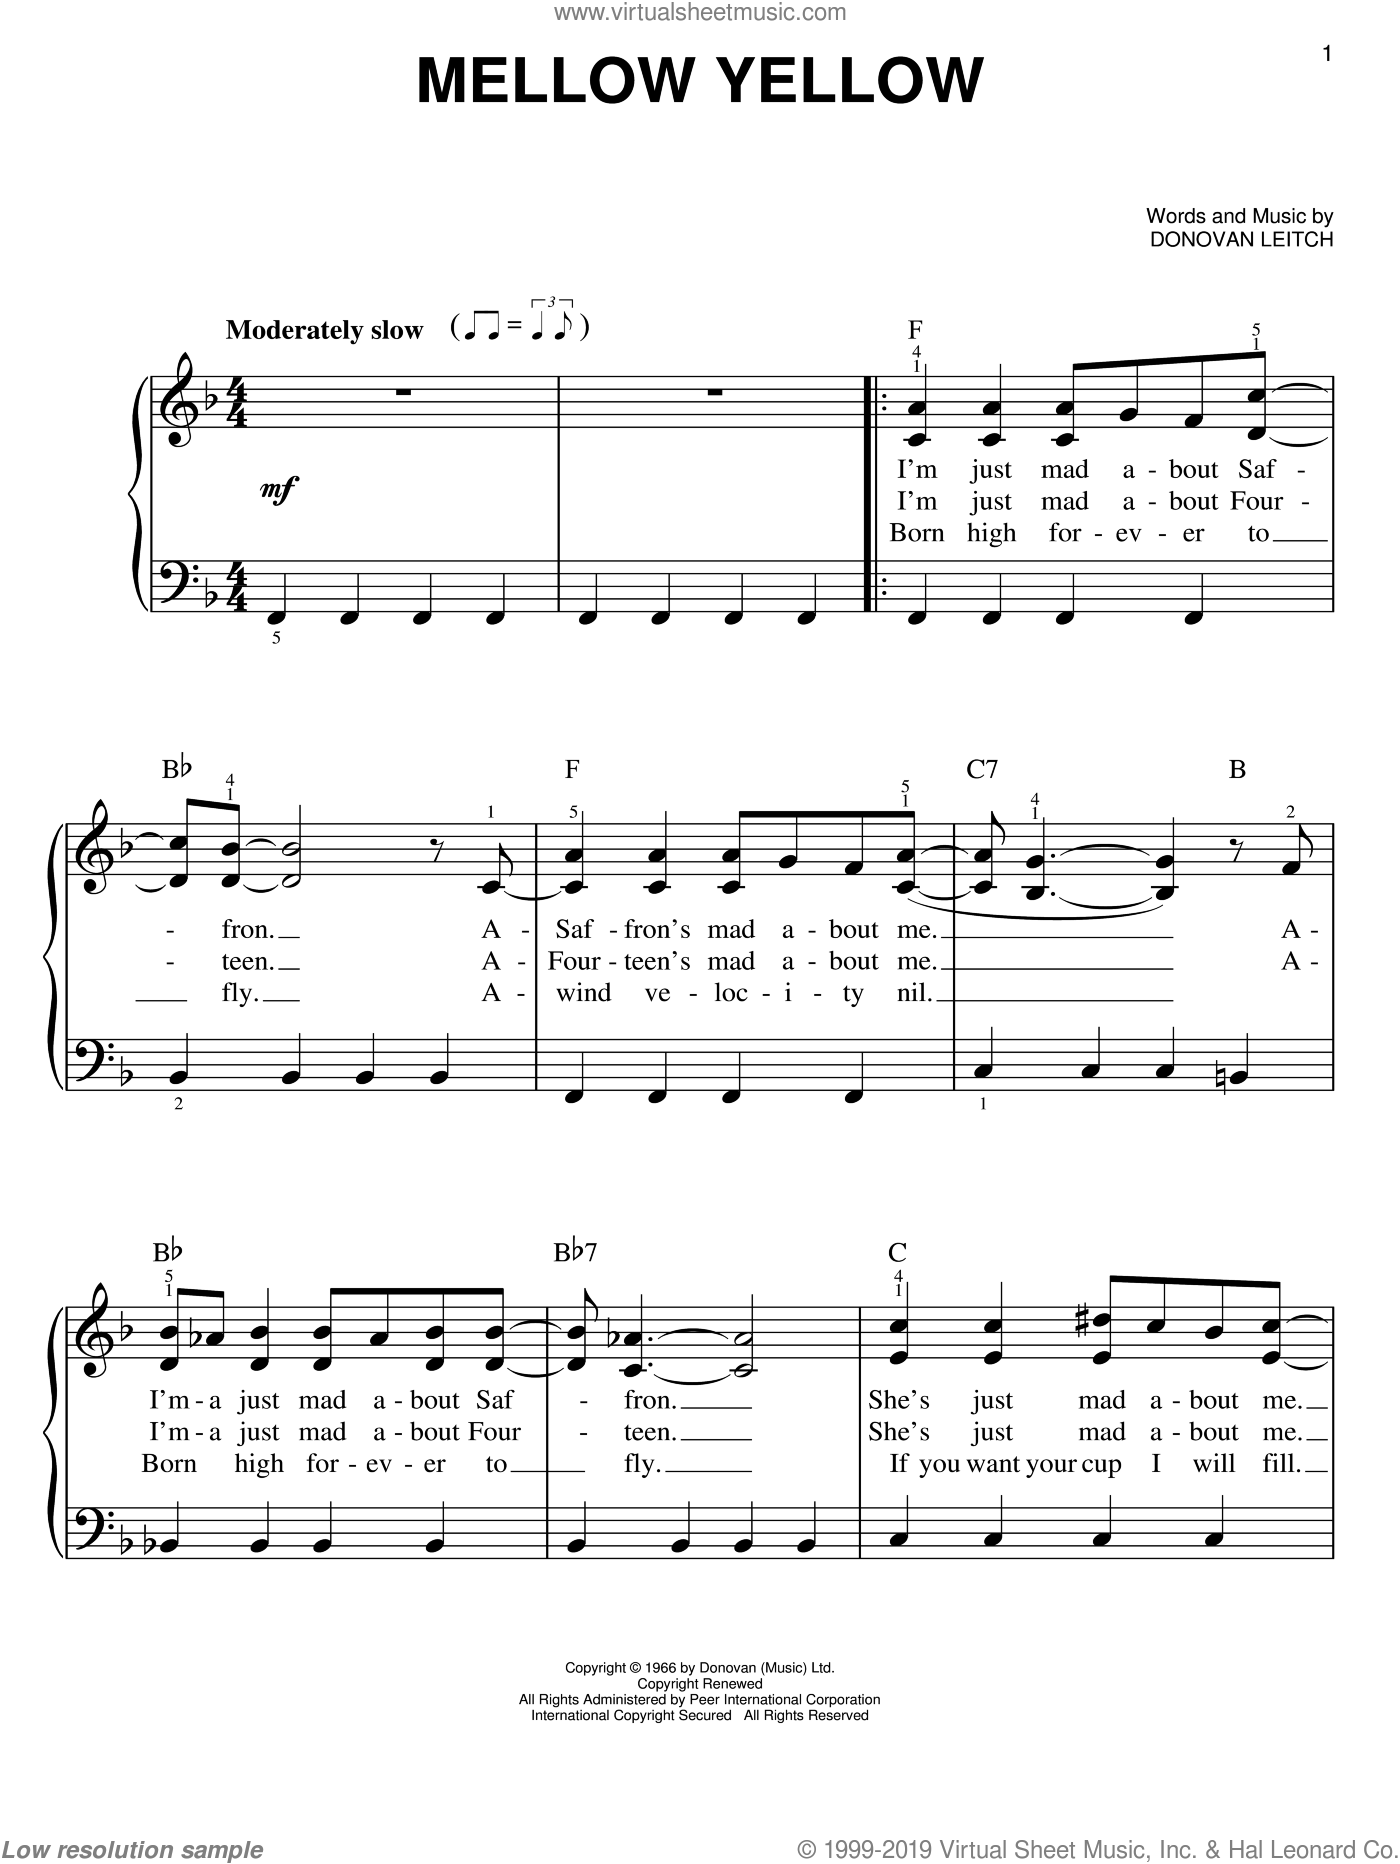 Mellow Yellow sheet music for piano solo (chords) by Donovan Leitch